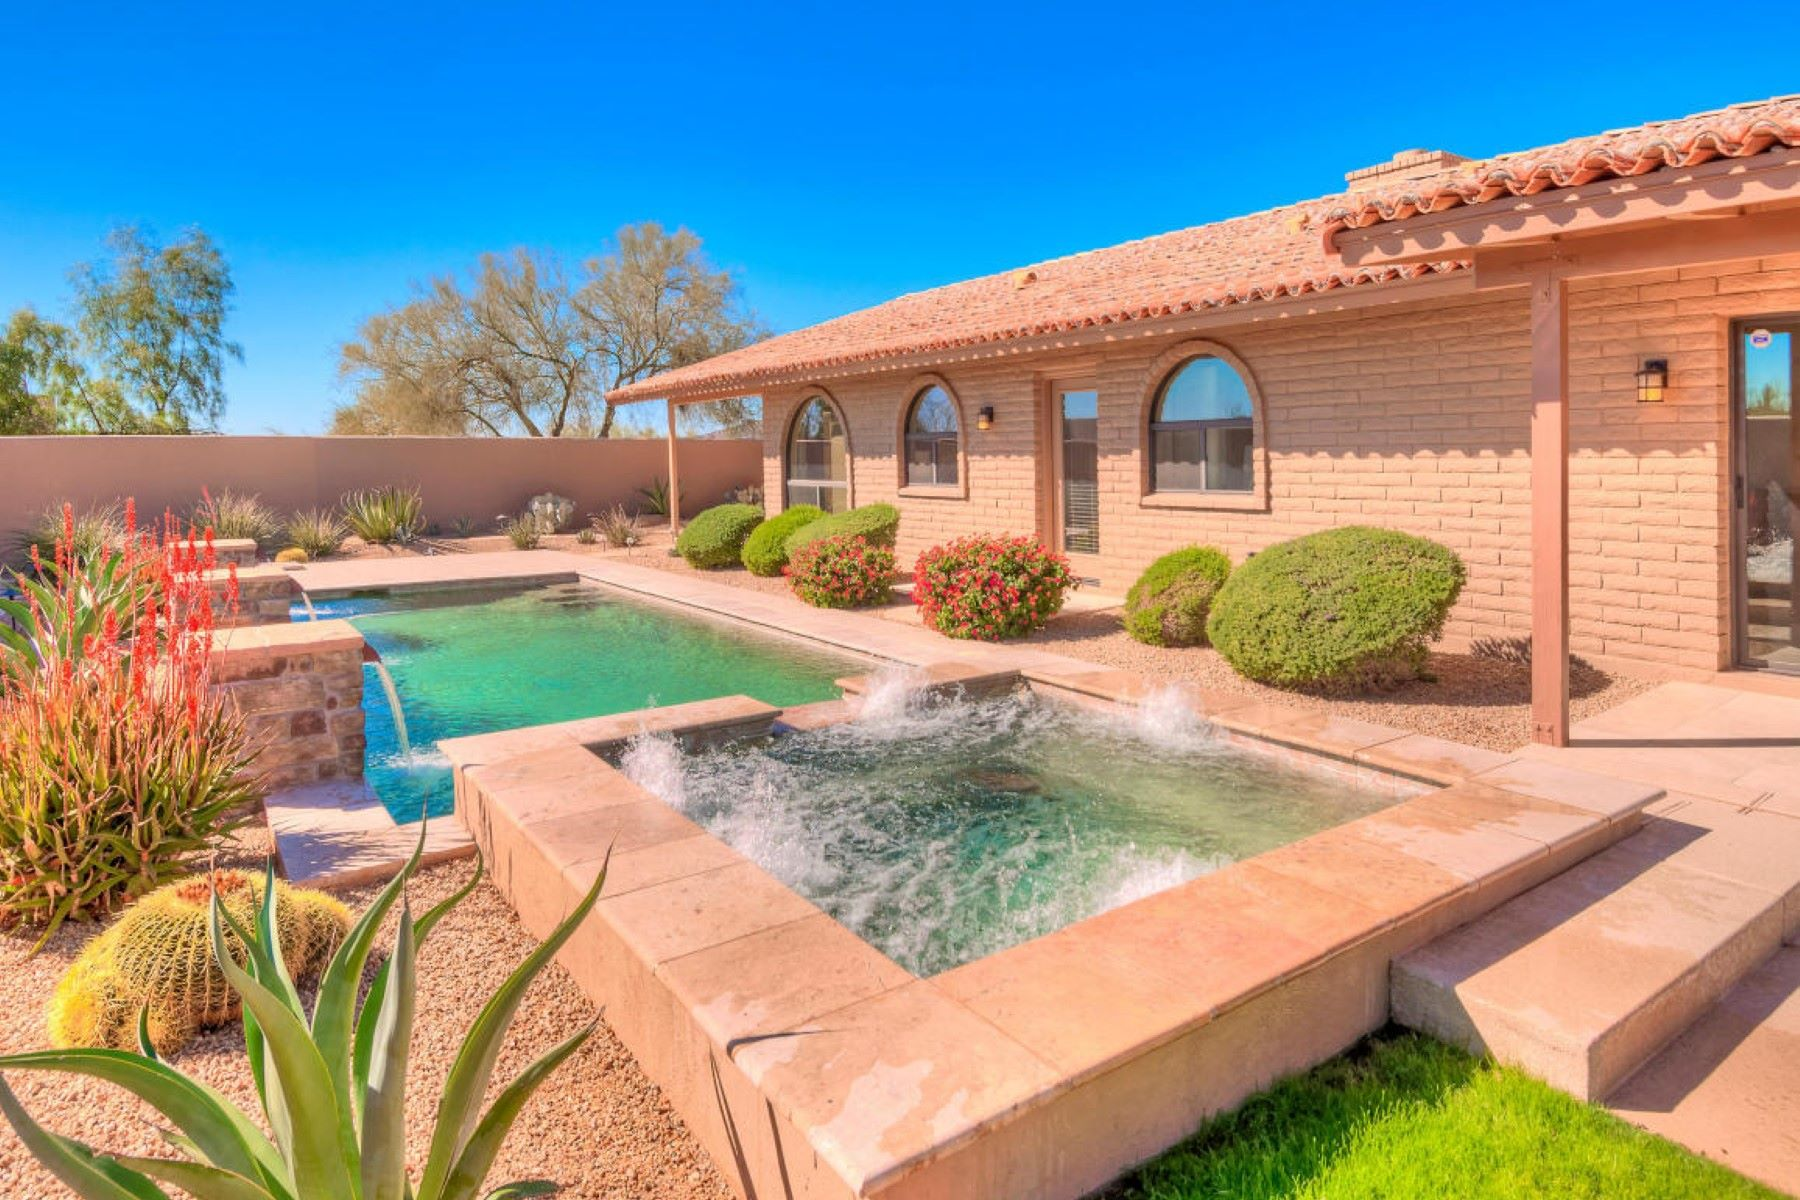 Single Family Home for Sale at Stunning Custom Slump Block Estate 8901 E Cave Creek RD Carefree, Arizona, 85377 United States